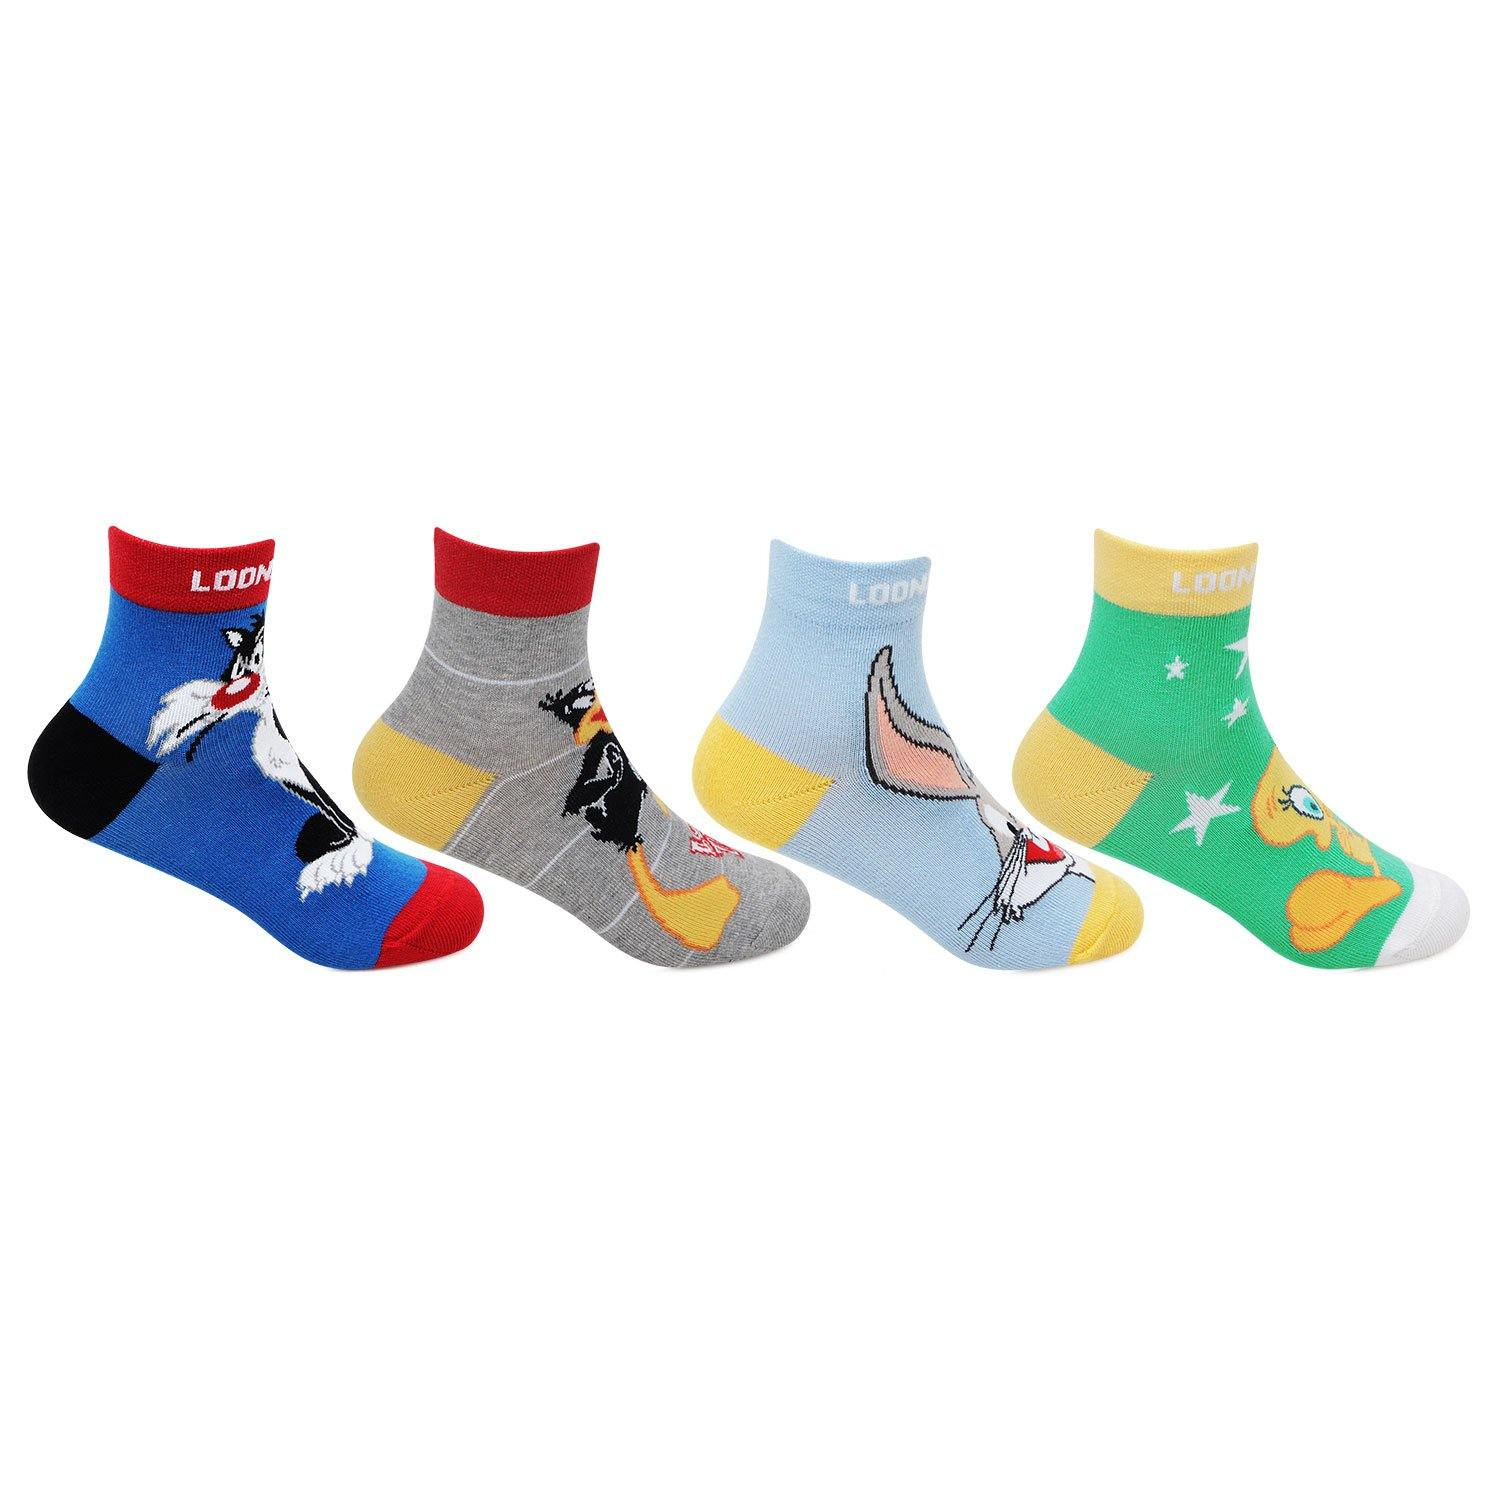 Looney Tunes Kids Multi color Ankle Socks For Kids - Pack Of 3